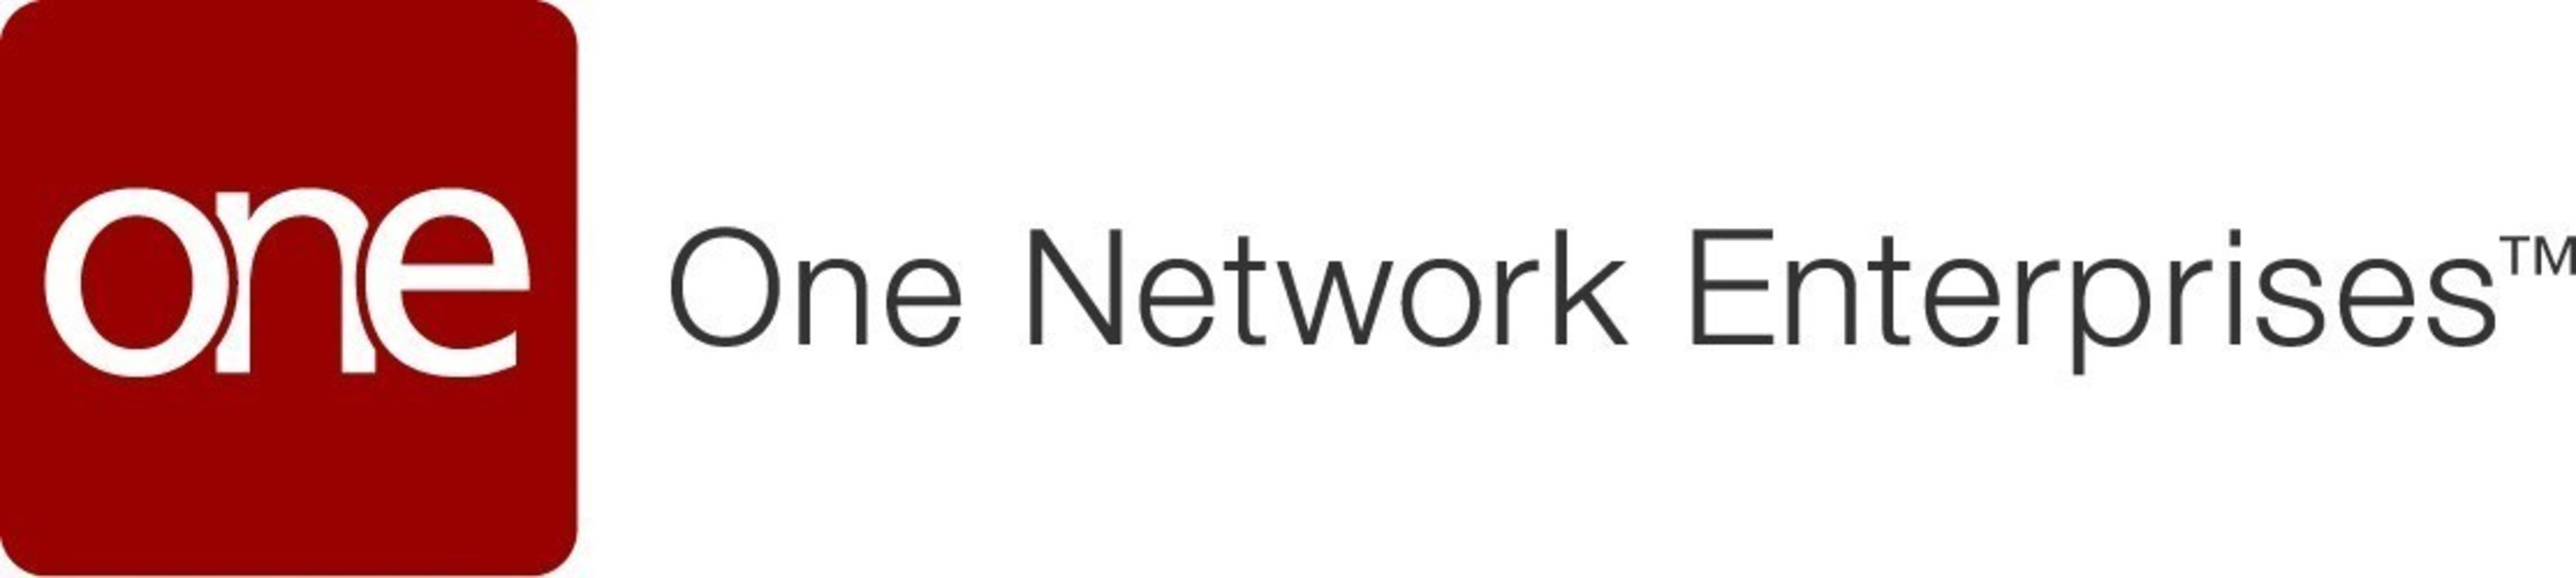 One Network's Real Time Value Network Version 16.0 Goes Live With 50,000 Partners